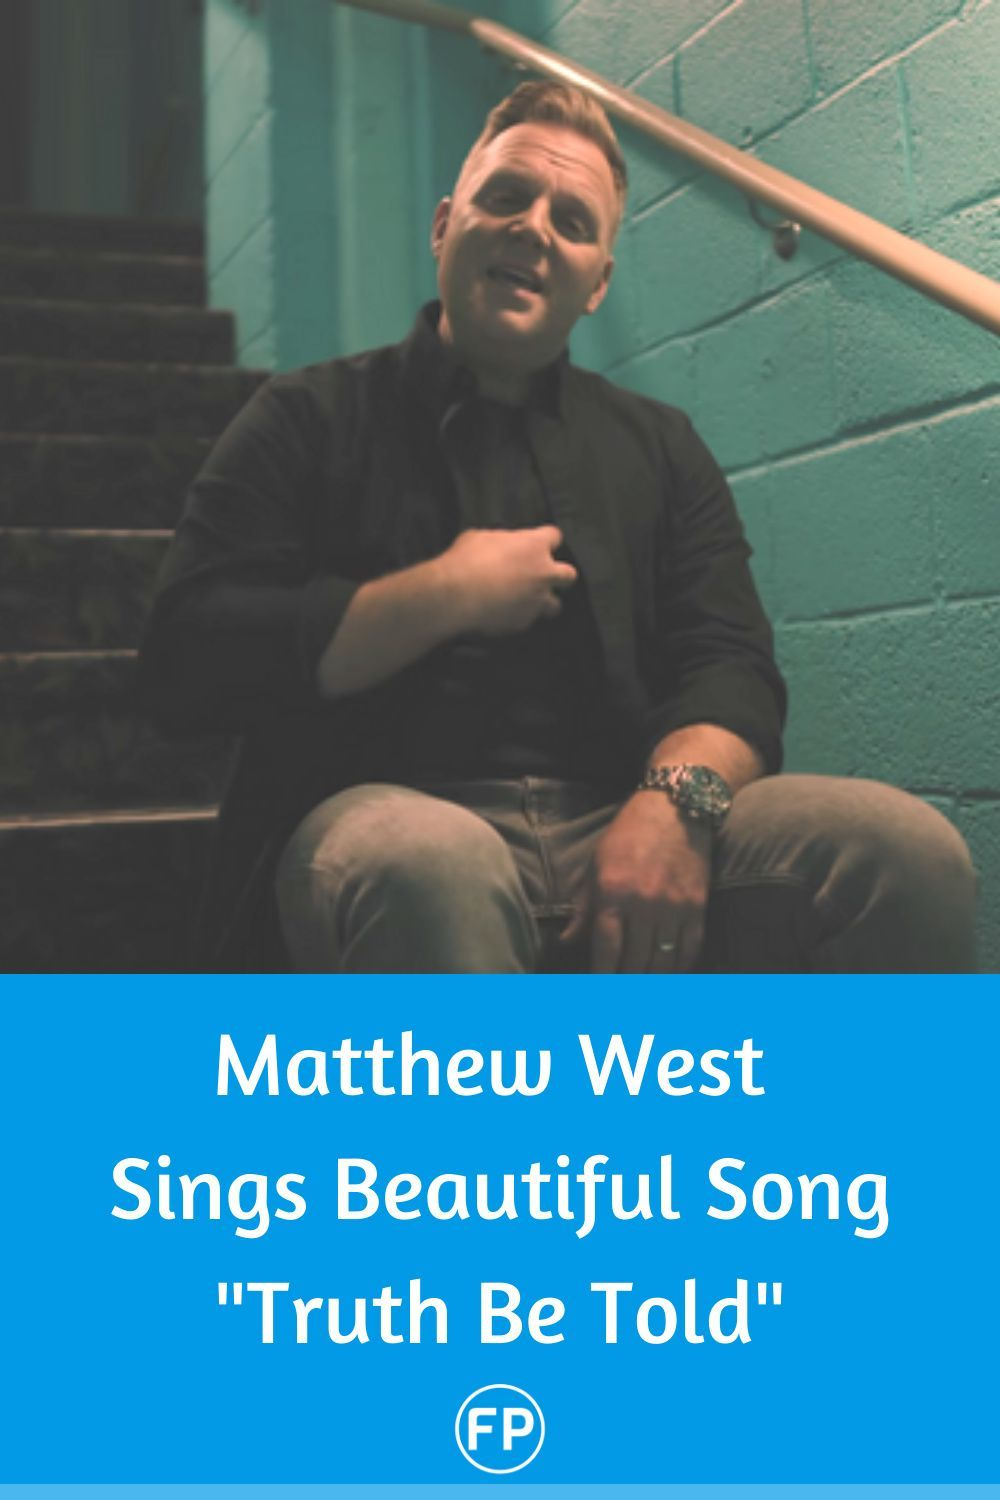 Truth Be Told Official Music Video By Matthew West Faithpot In 2020 Beautiful Songs Christian Songs List Christian Song Lyrics